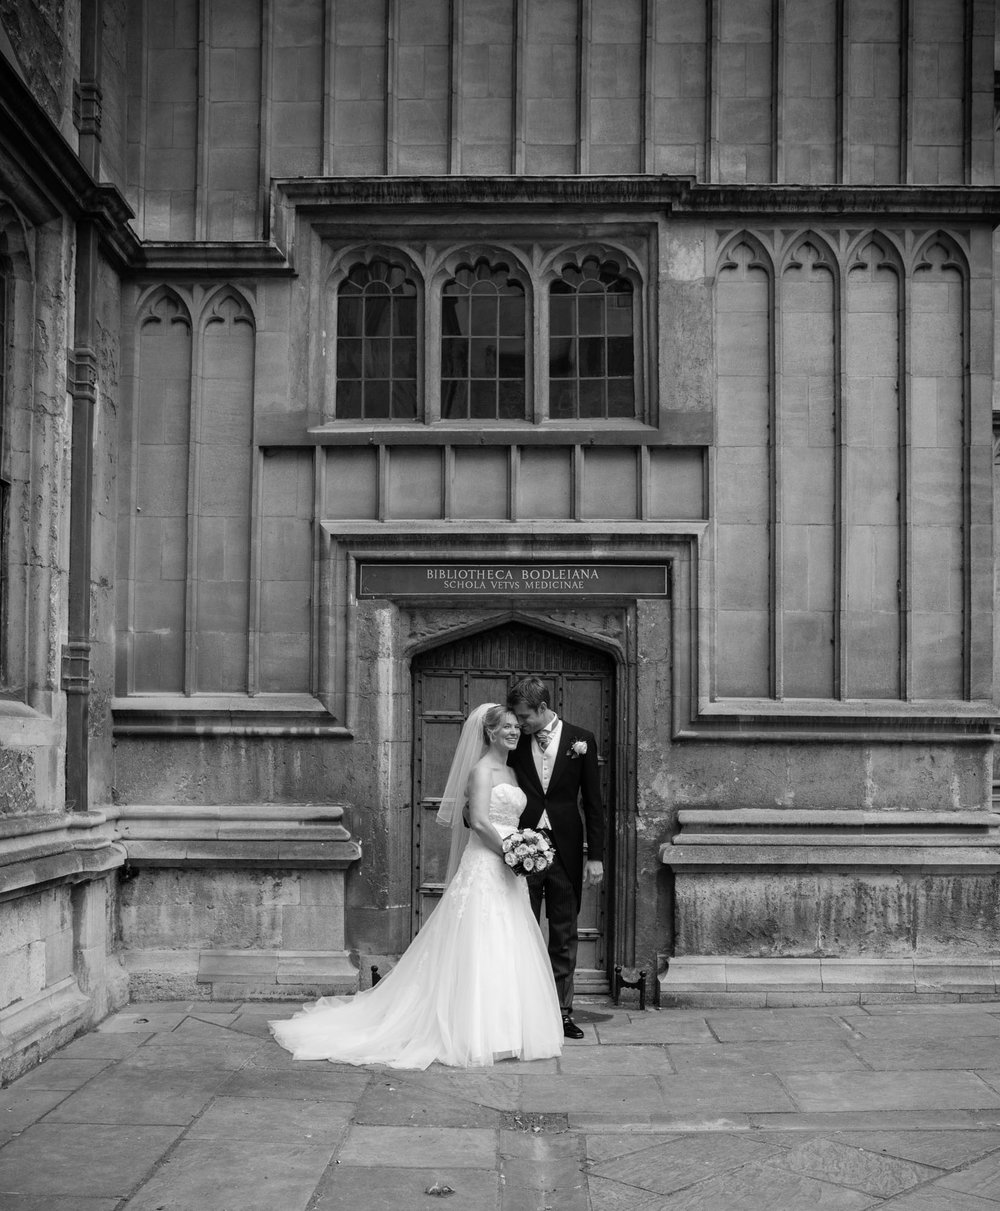 weddings-couples-love-photographer-oxford-london-jonathan-self-photography-75.jpg